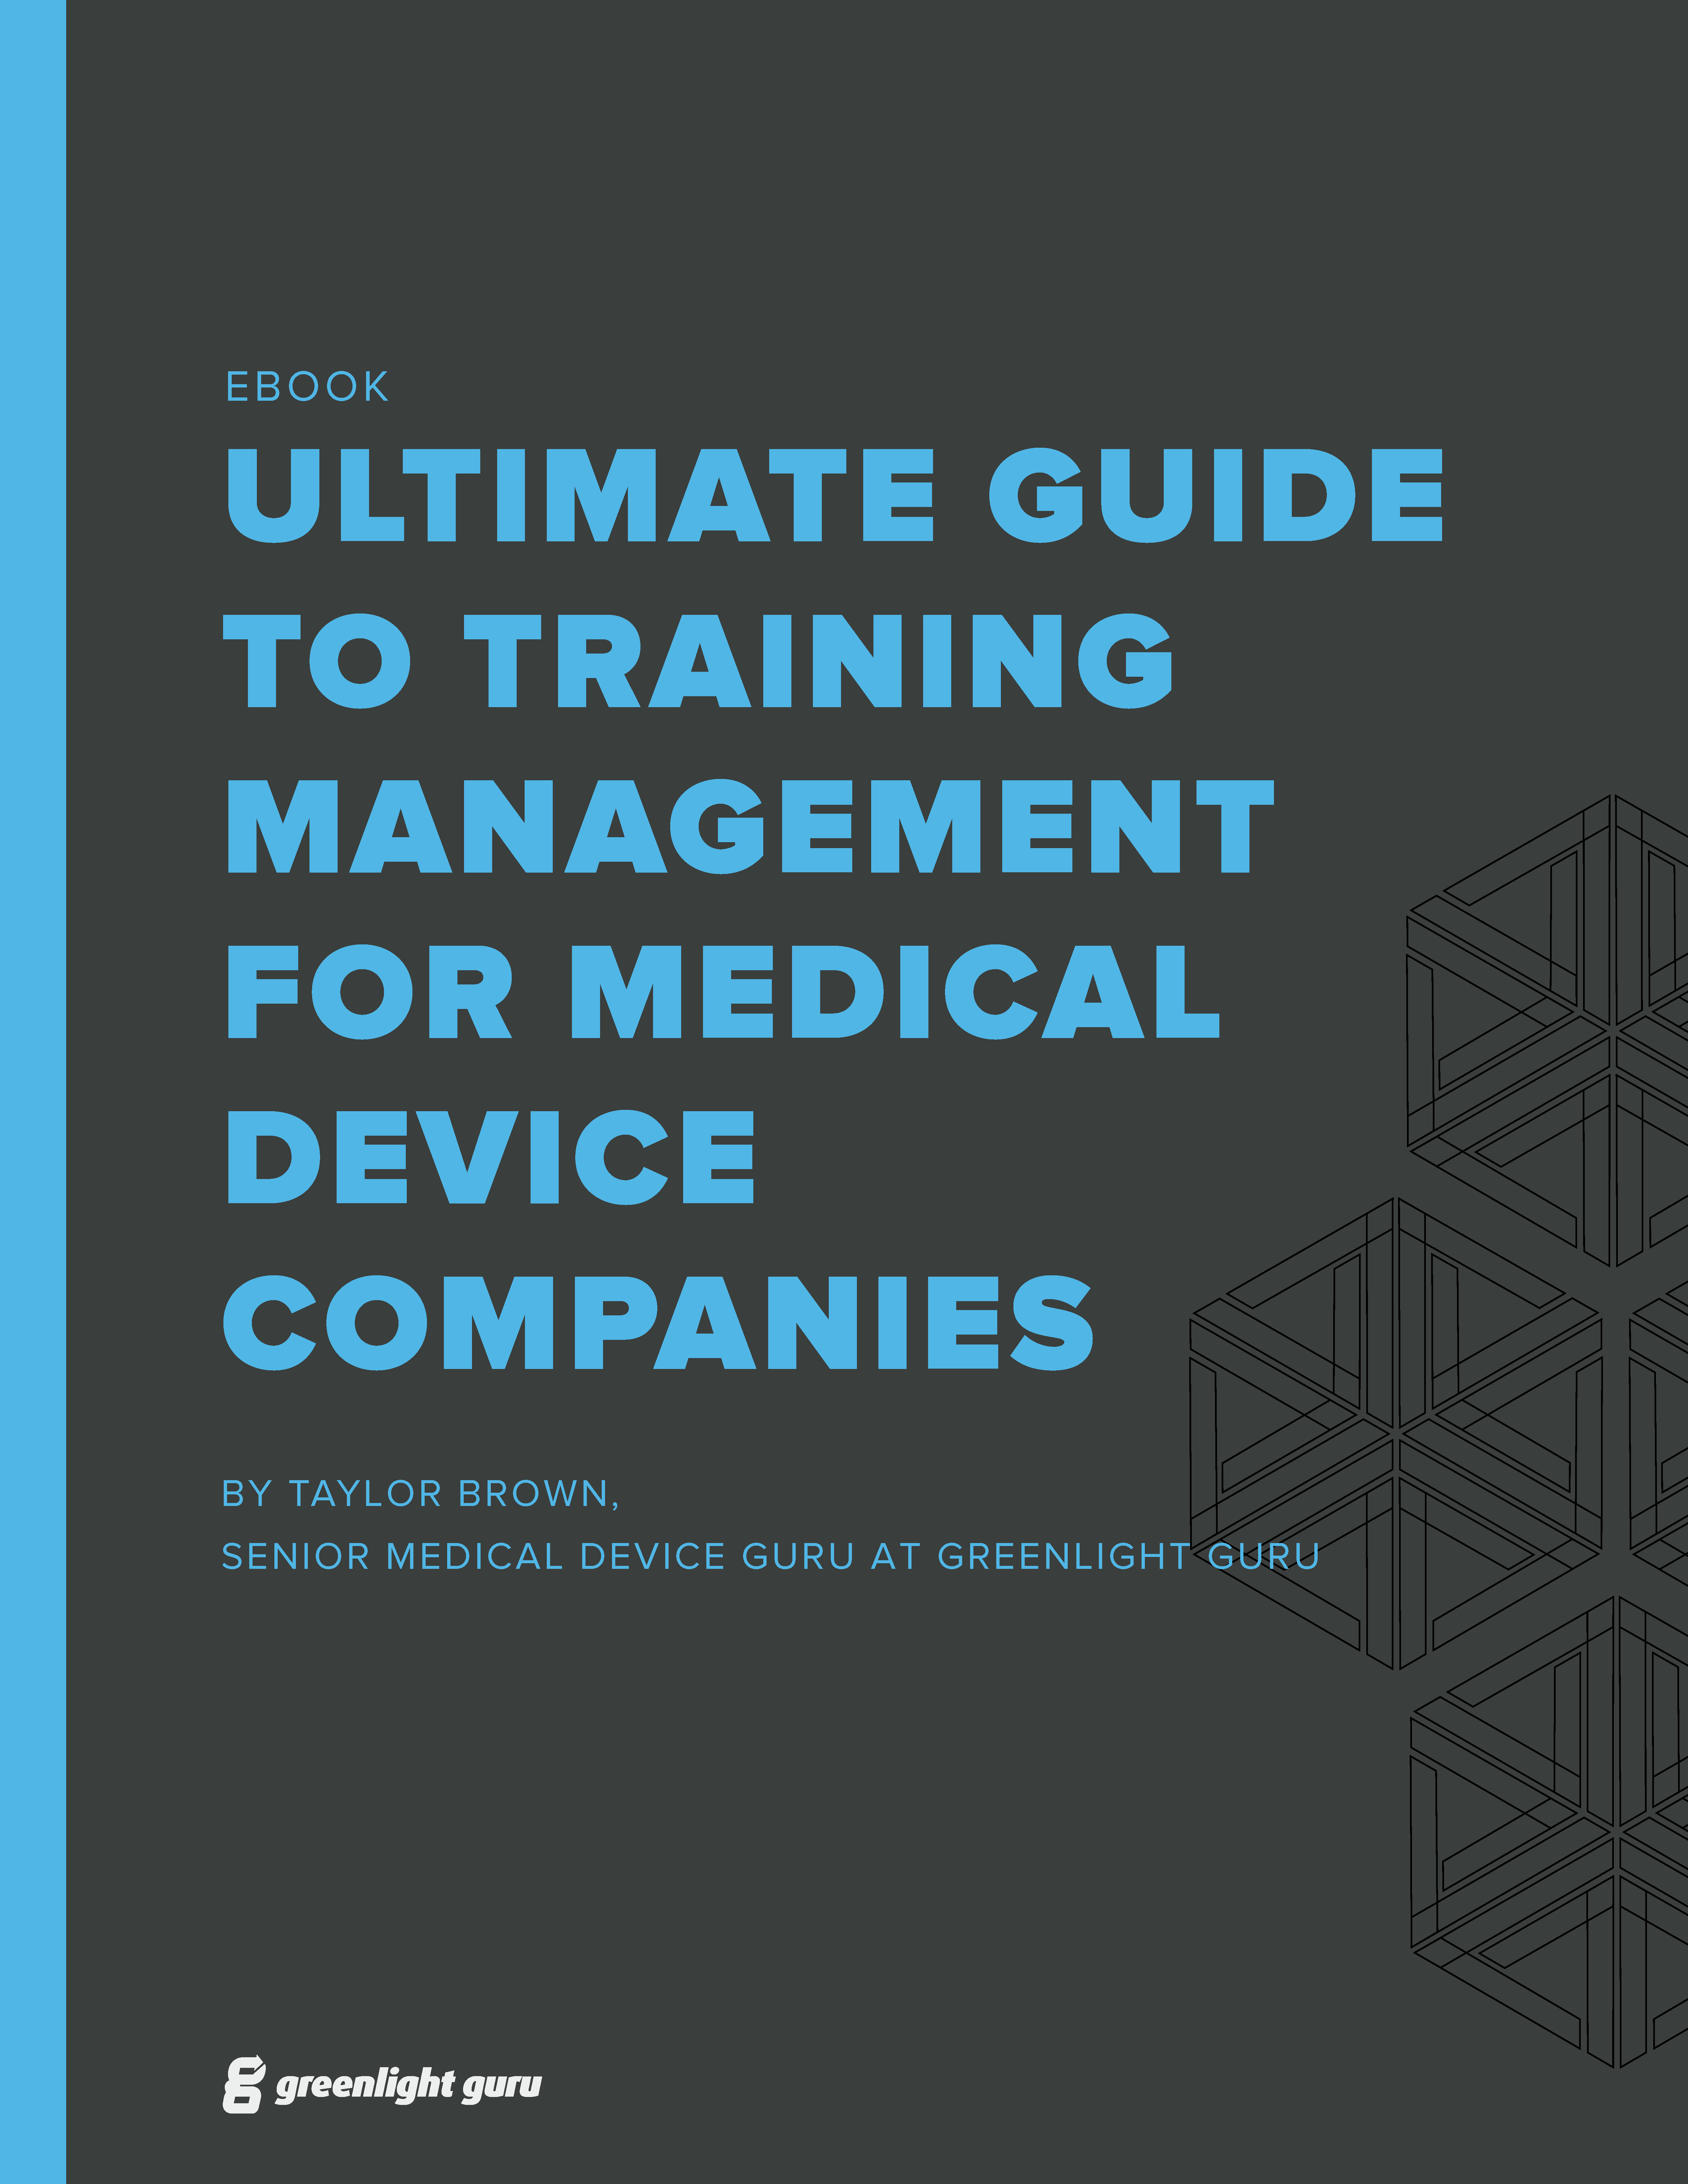 (cover) Ultimate Guide to Training Management for Medical Device Companies